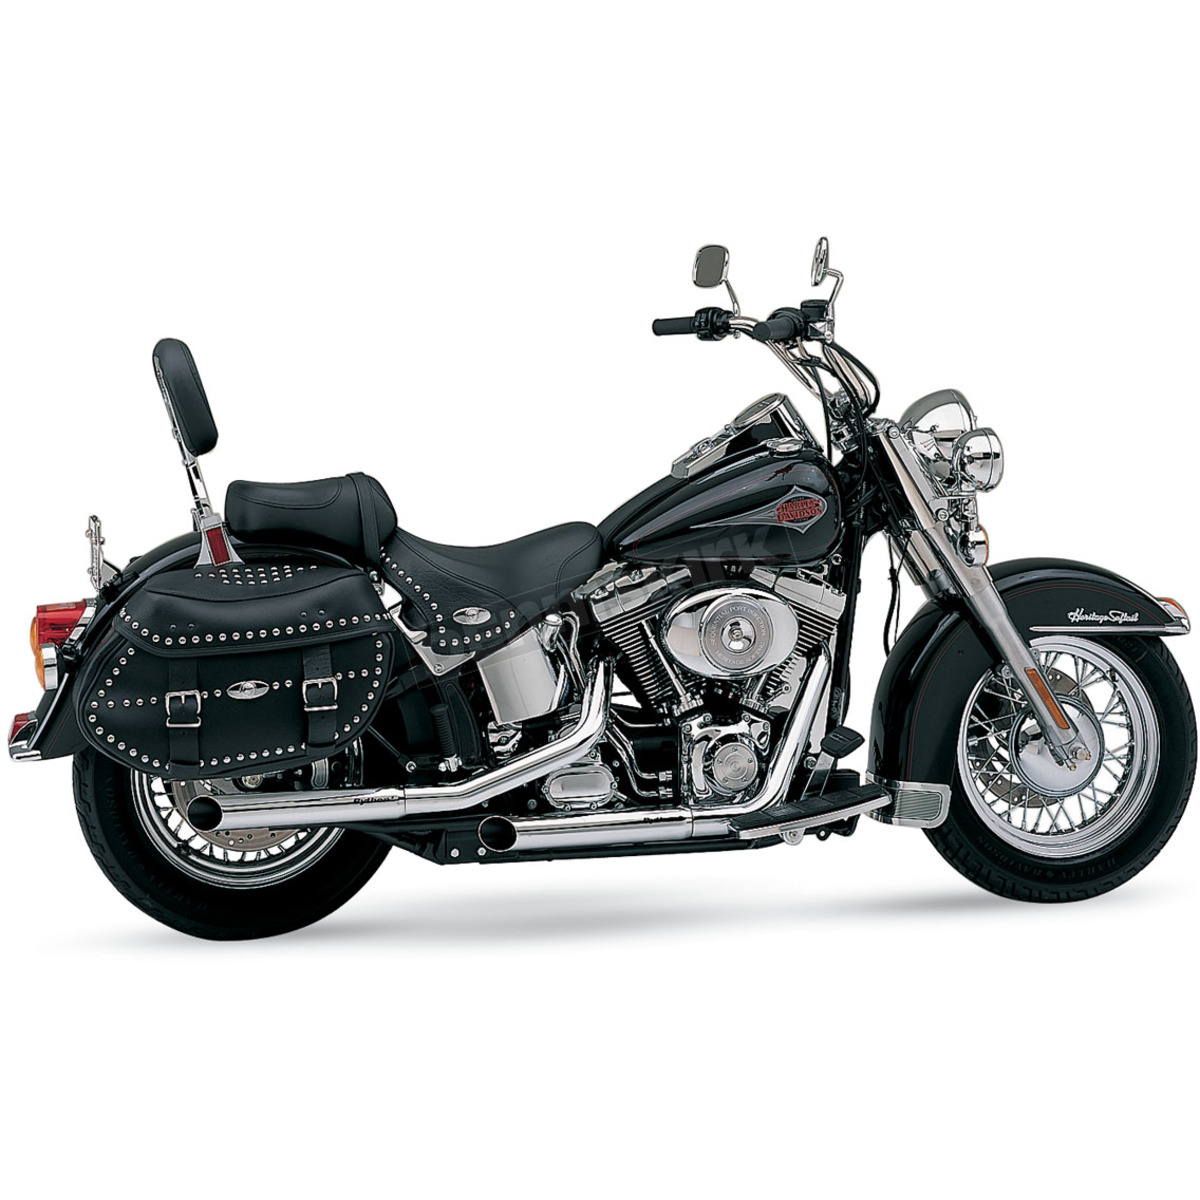 2000 Harley Softail Wiring Diagram Color - Wiring Diagram For ... on simple harley wiring diagram, harley davidson wiring diagram, 2000 kawasaki vulcan wiring diagram, 2000 harley softail frame, 2001 hd coil wiring diagram, softail rear light wiring diagram, 1990 harley wiring diagram, 2000 yamaha warrior wiring diagram,